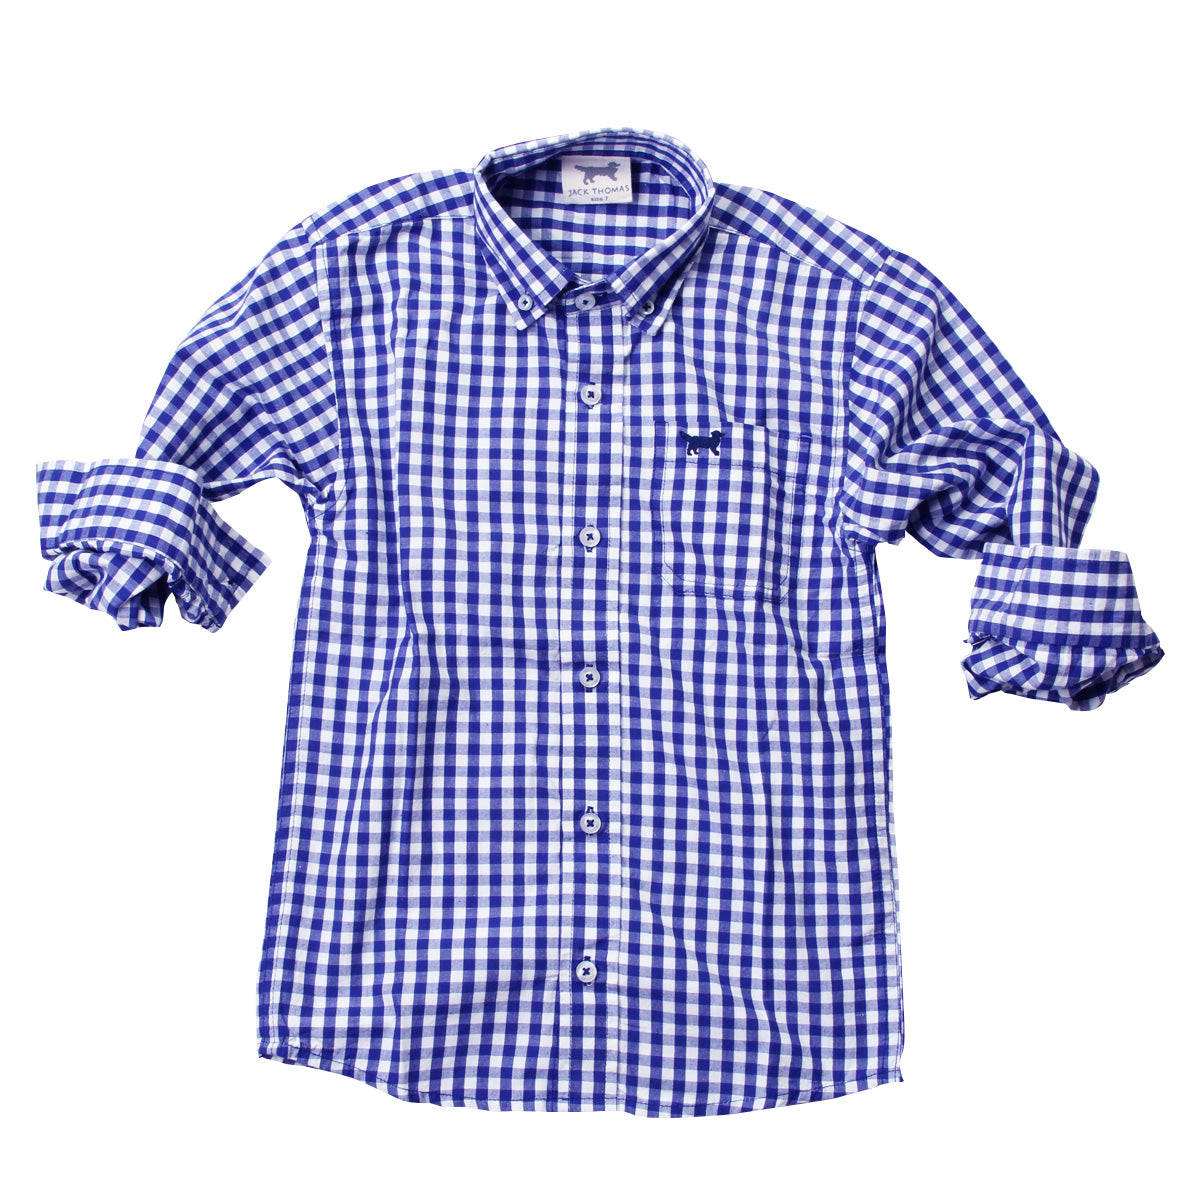 Blue button front long sleeve shirt; soft organic cotton; boys shirt